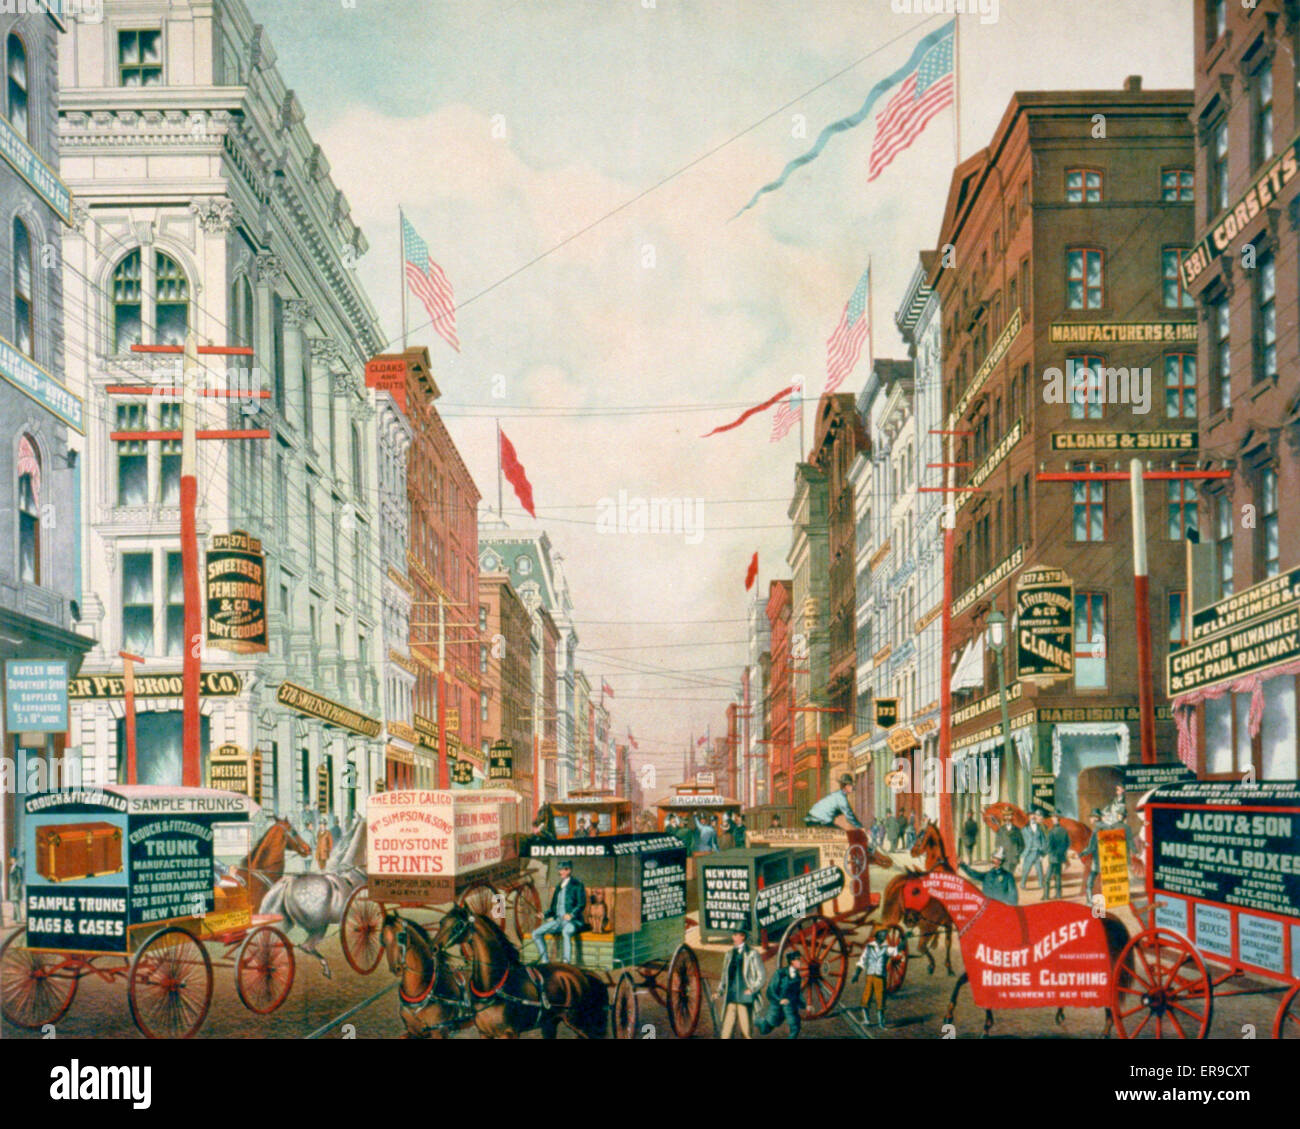 A glimpse of New York's dry goods district. Illustration of a busy scene on Broadway in New York City showing - Stock Image